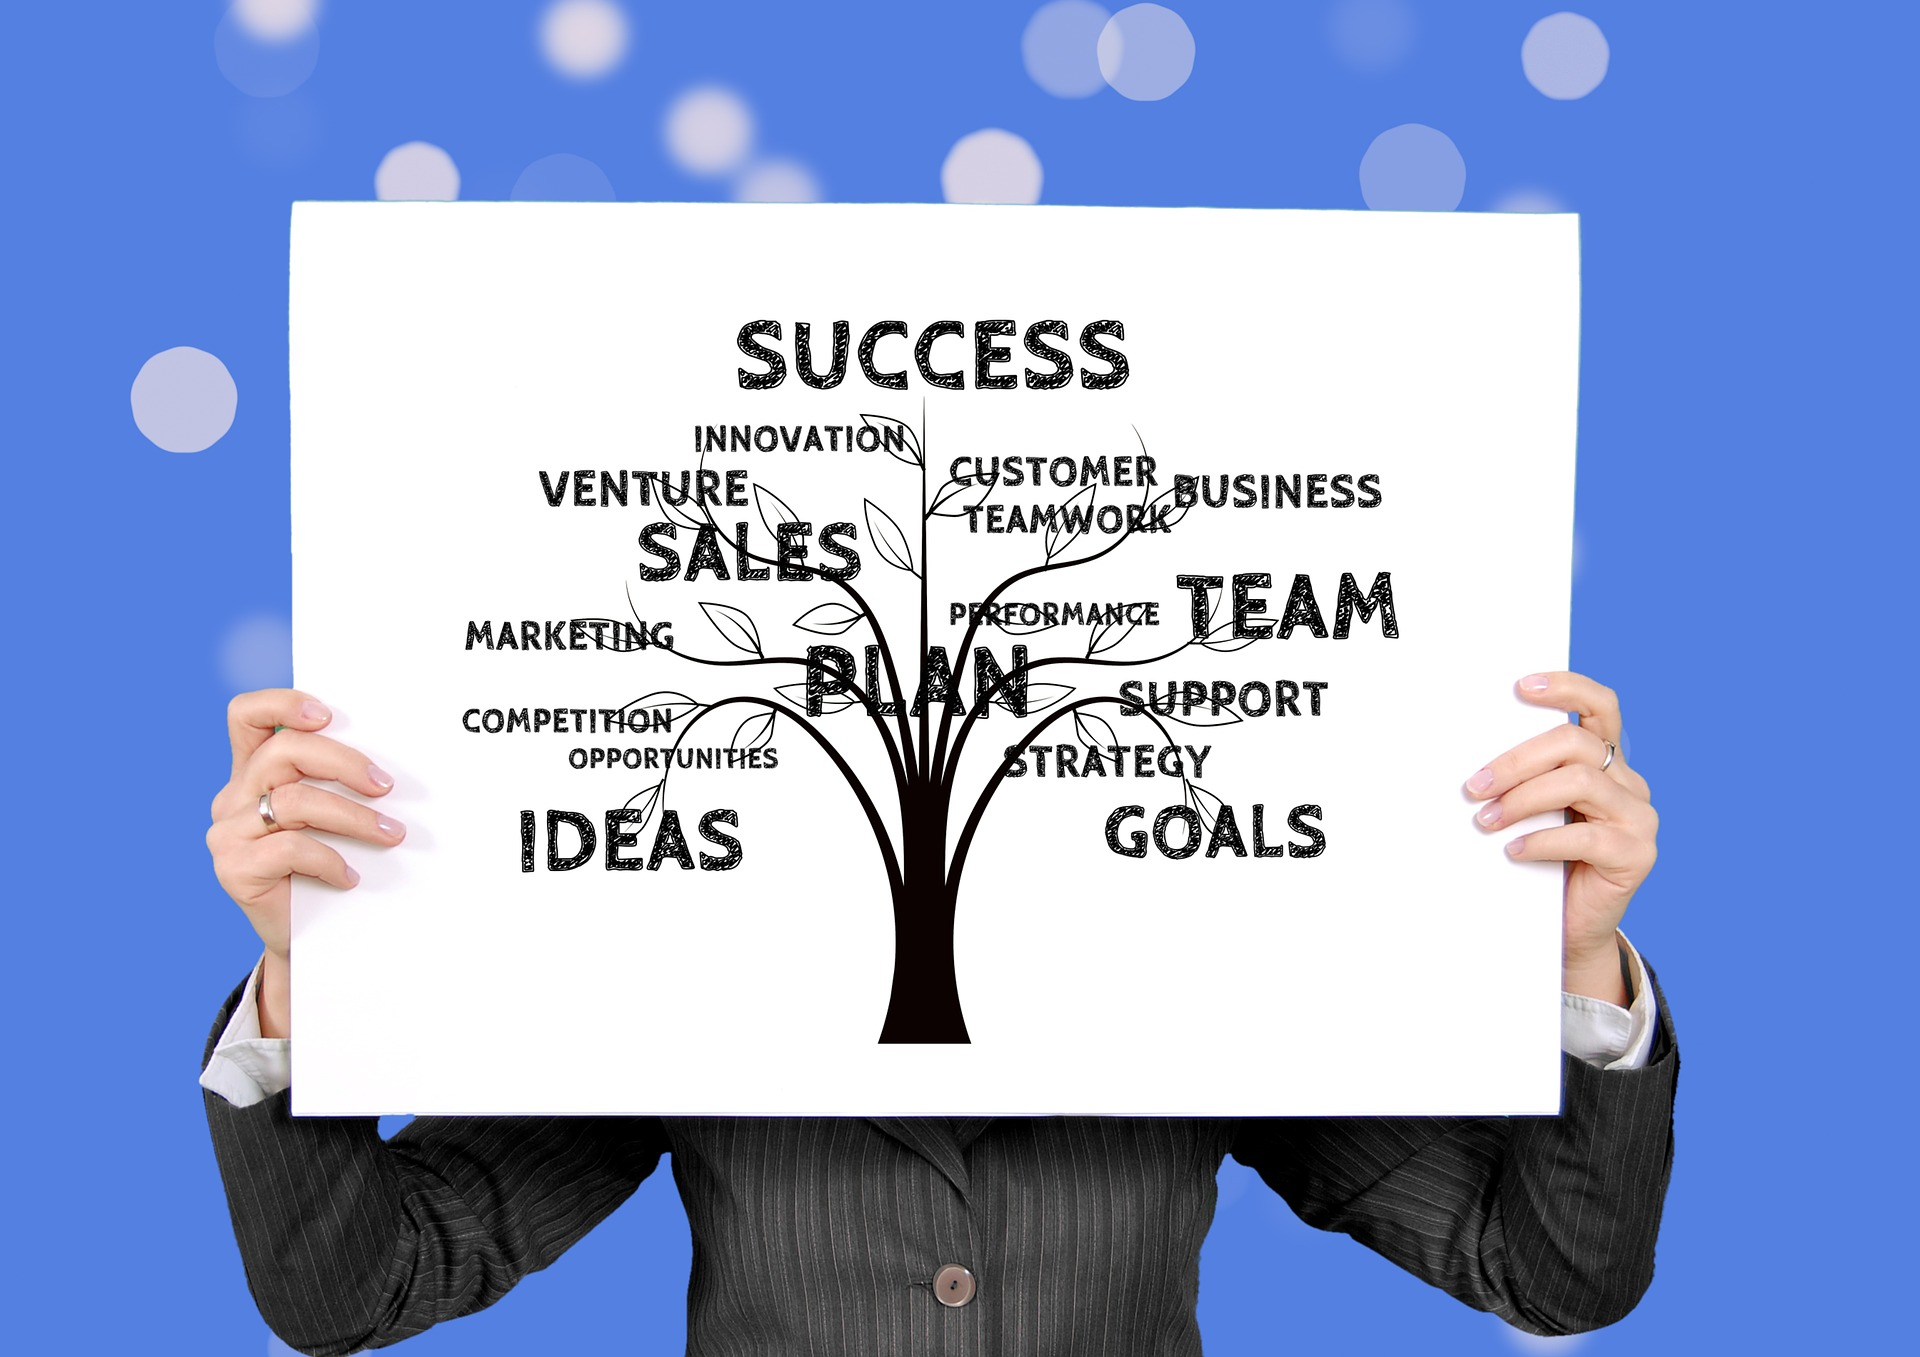 Take Advantage Of Running Your Own Business - Read These 5 Tips